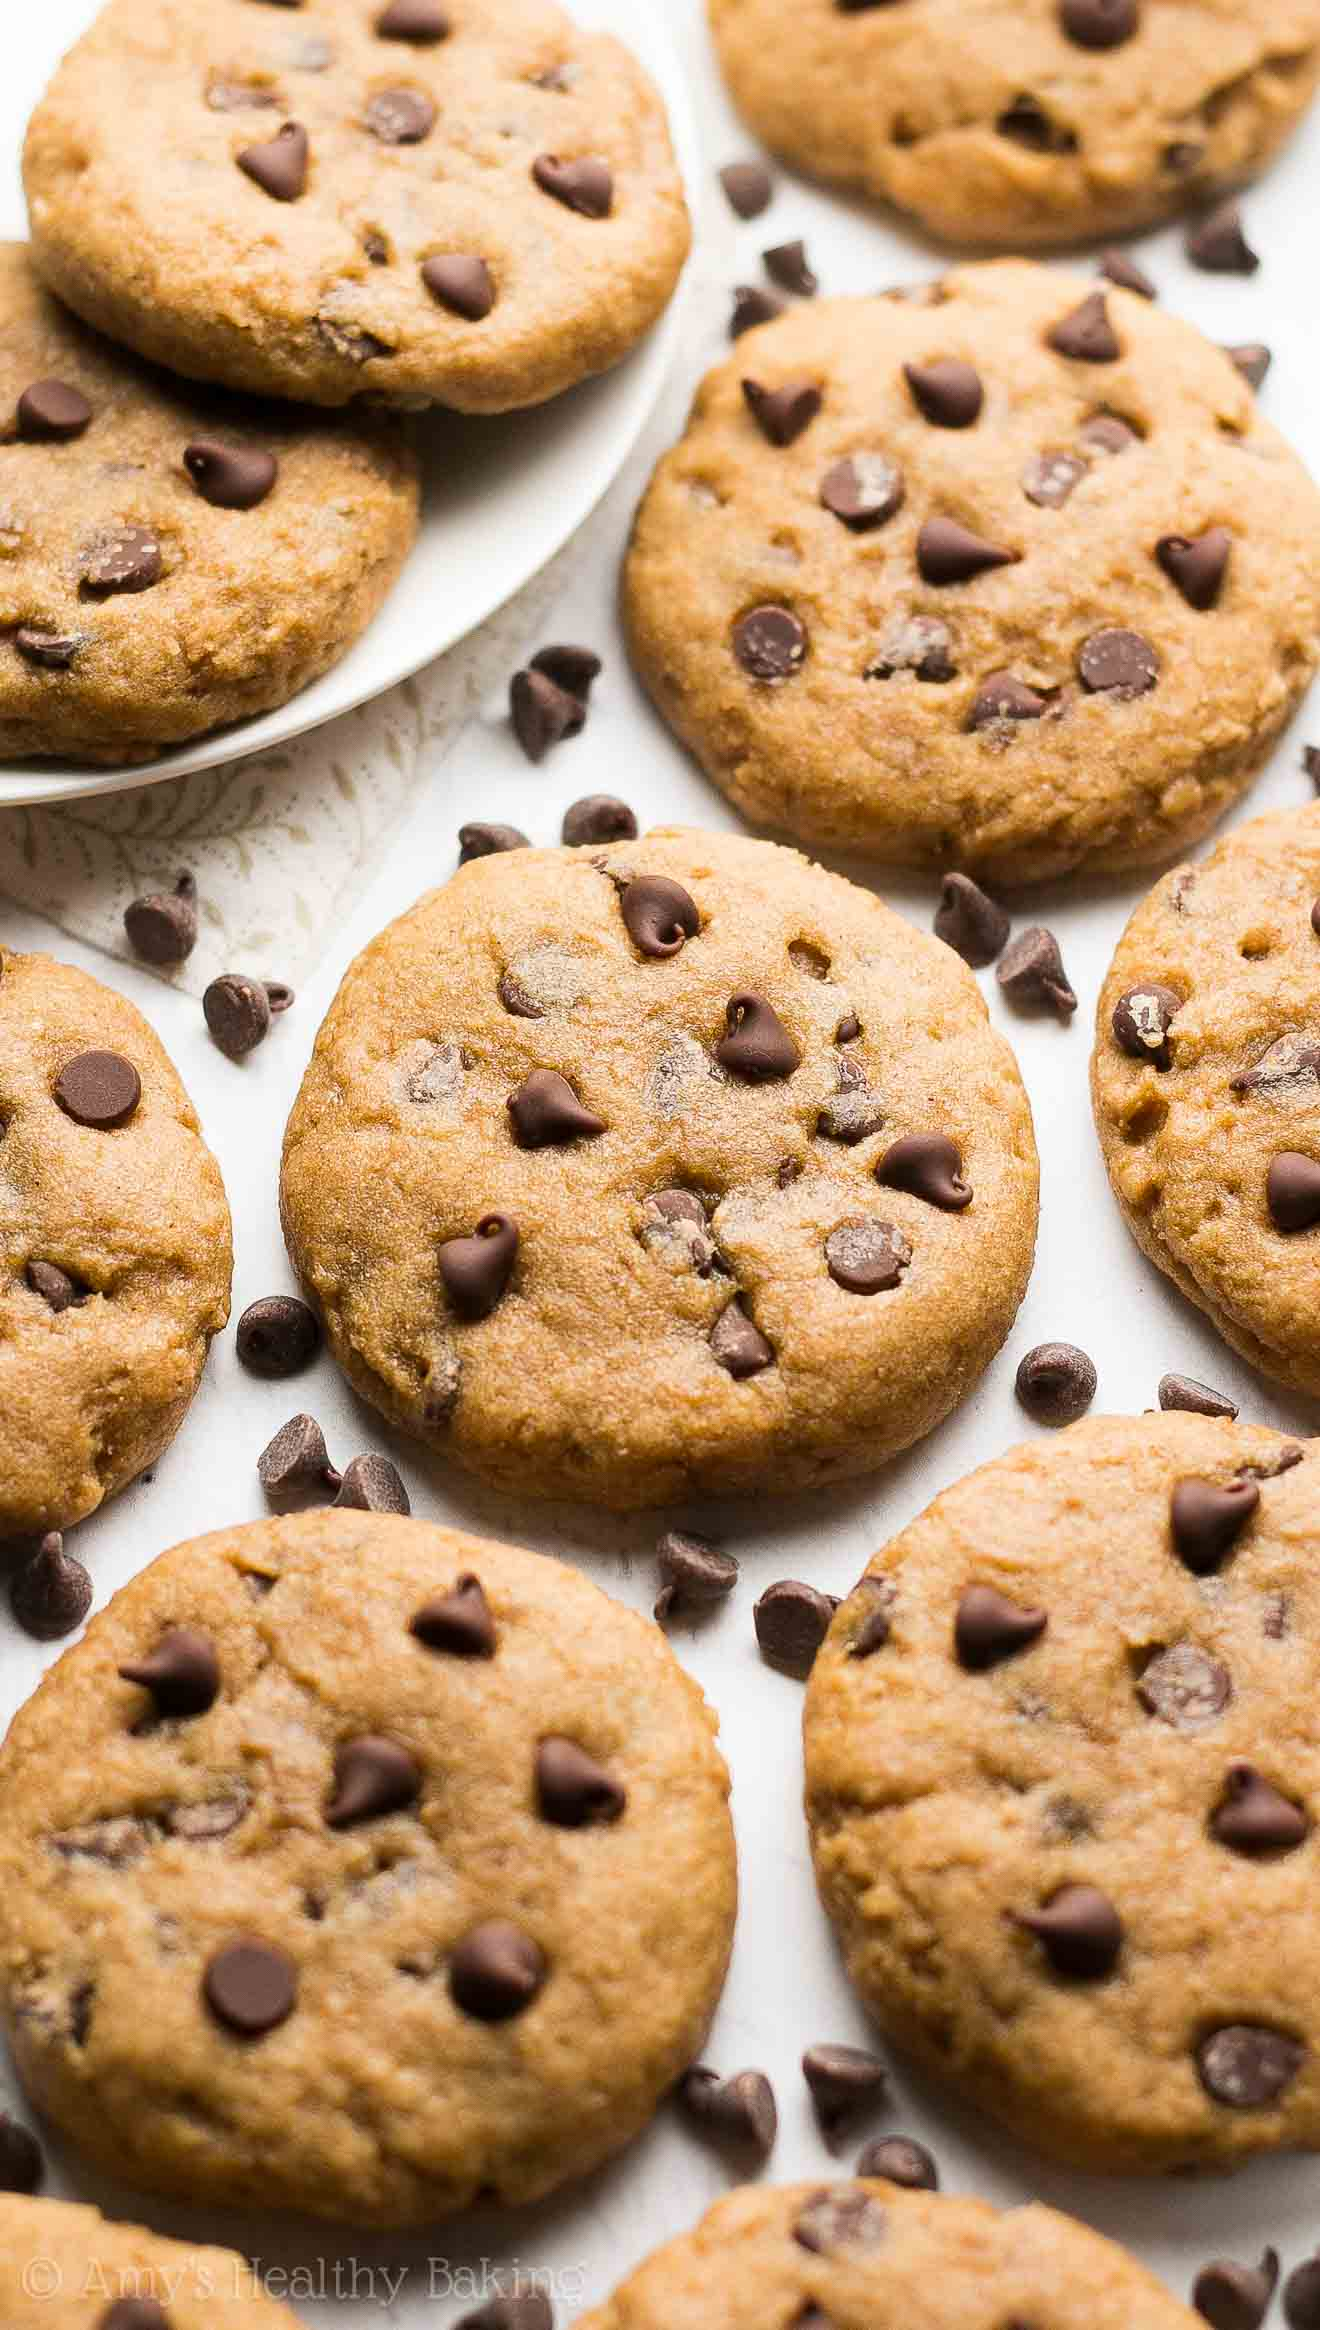 Healthy Banana Chocolate Chip Cookies | Amy's ...